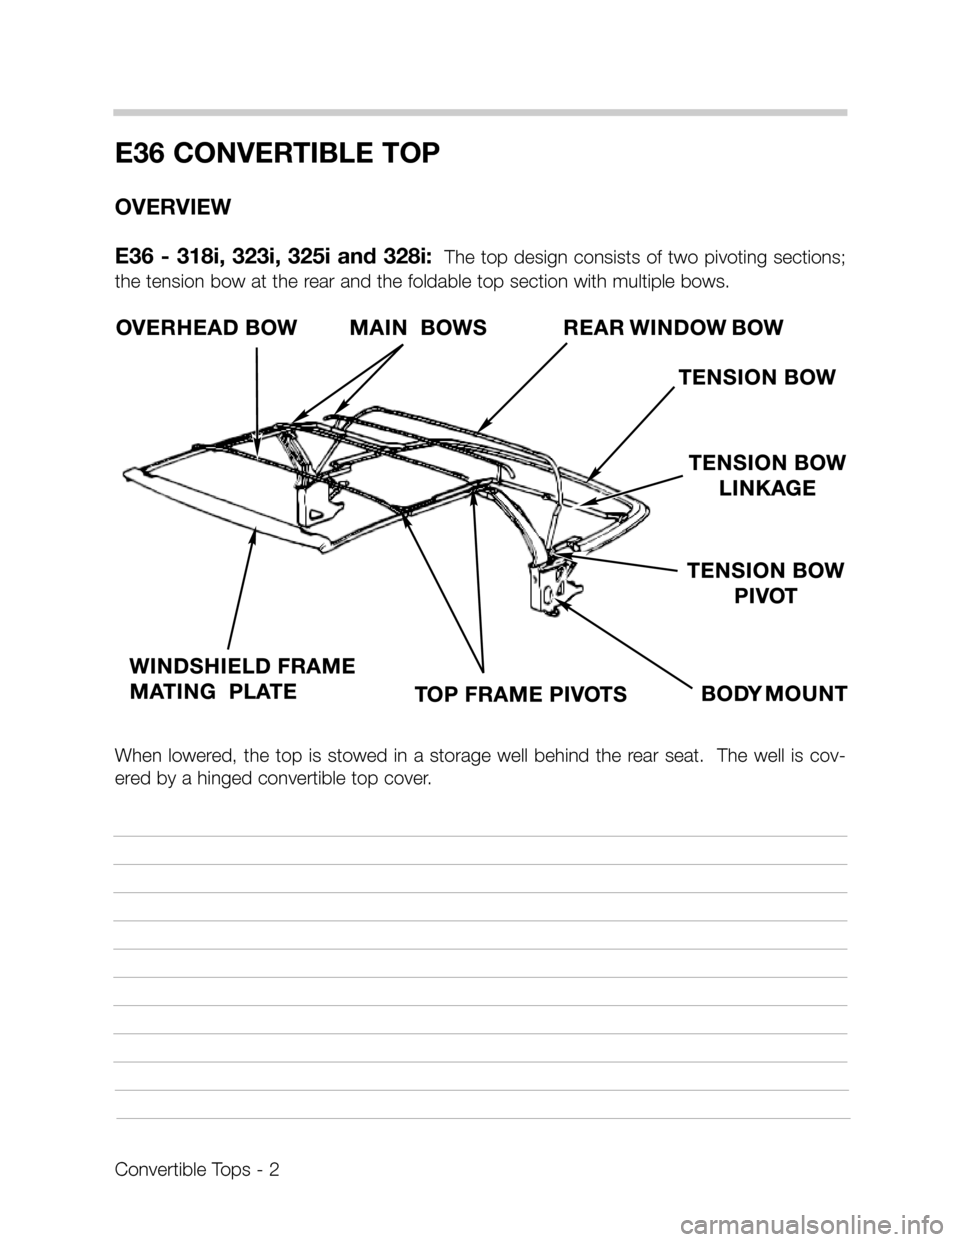 BMW Z3 CONVERTIBLE 1995 E36 Convertible Tops Manual, Page 2